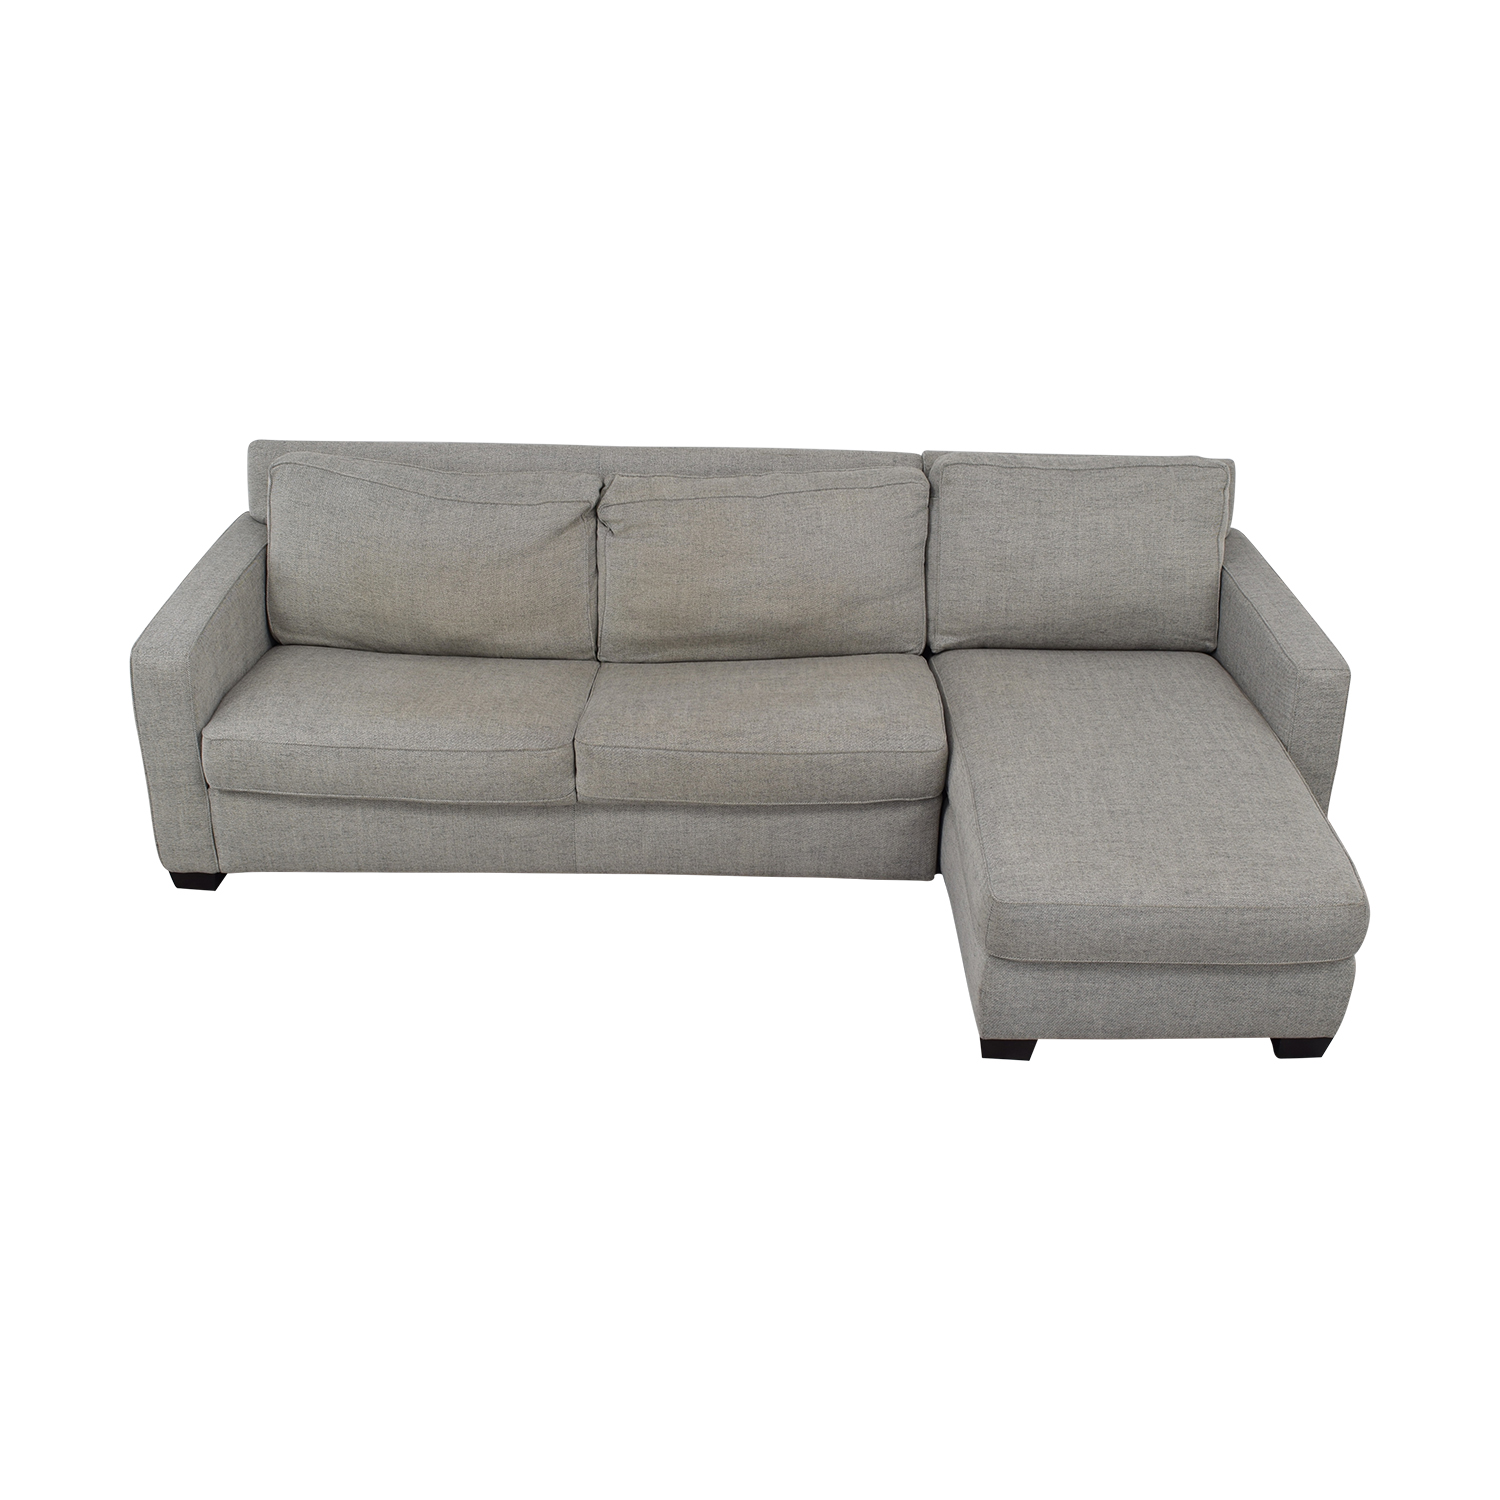 West Elm Henry Sectional Sleeper Sofa / Sofa Beds